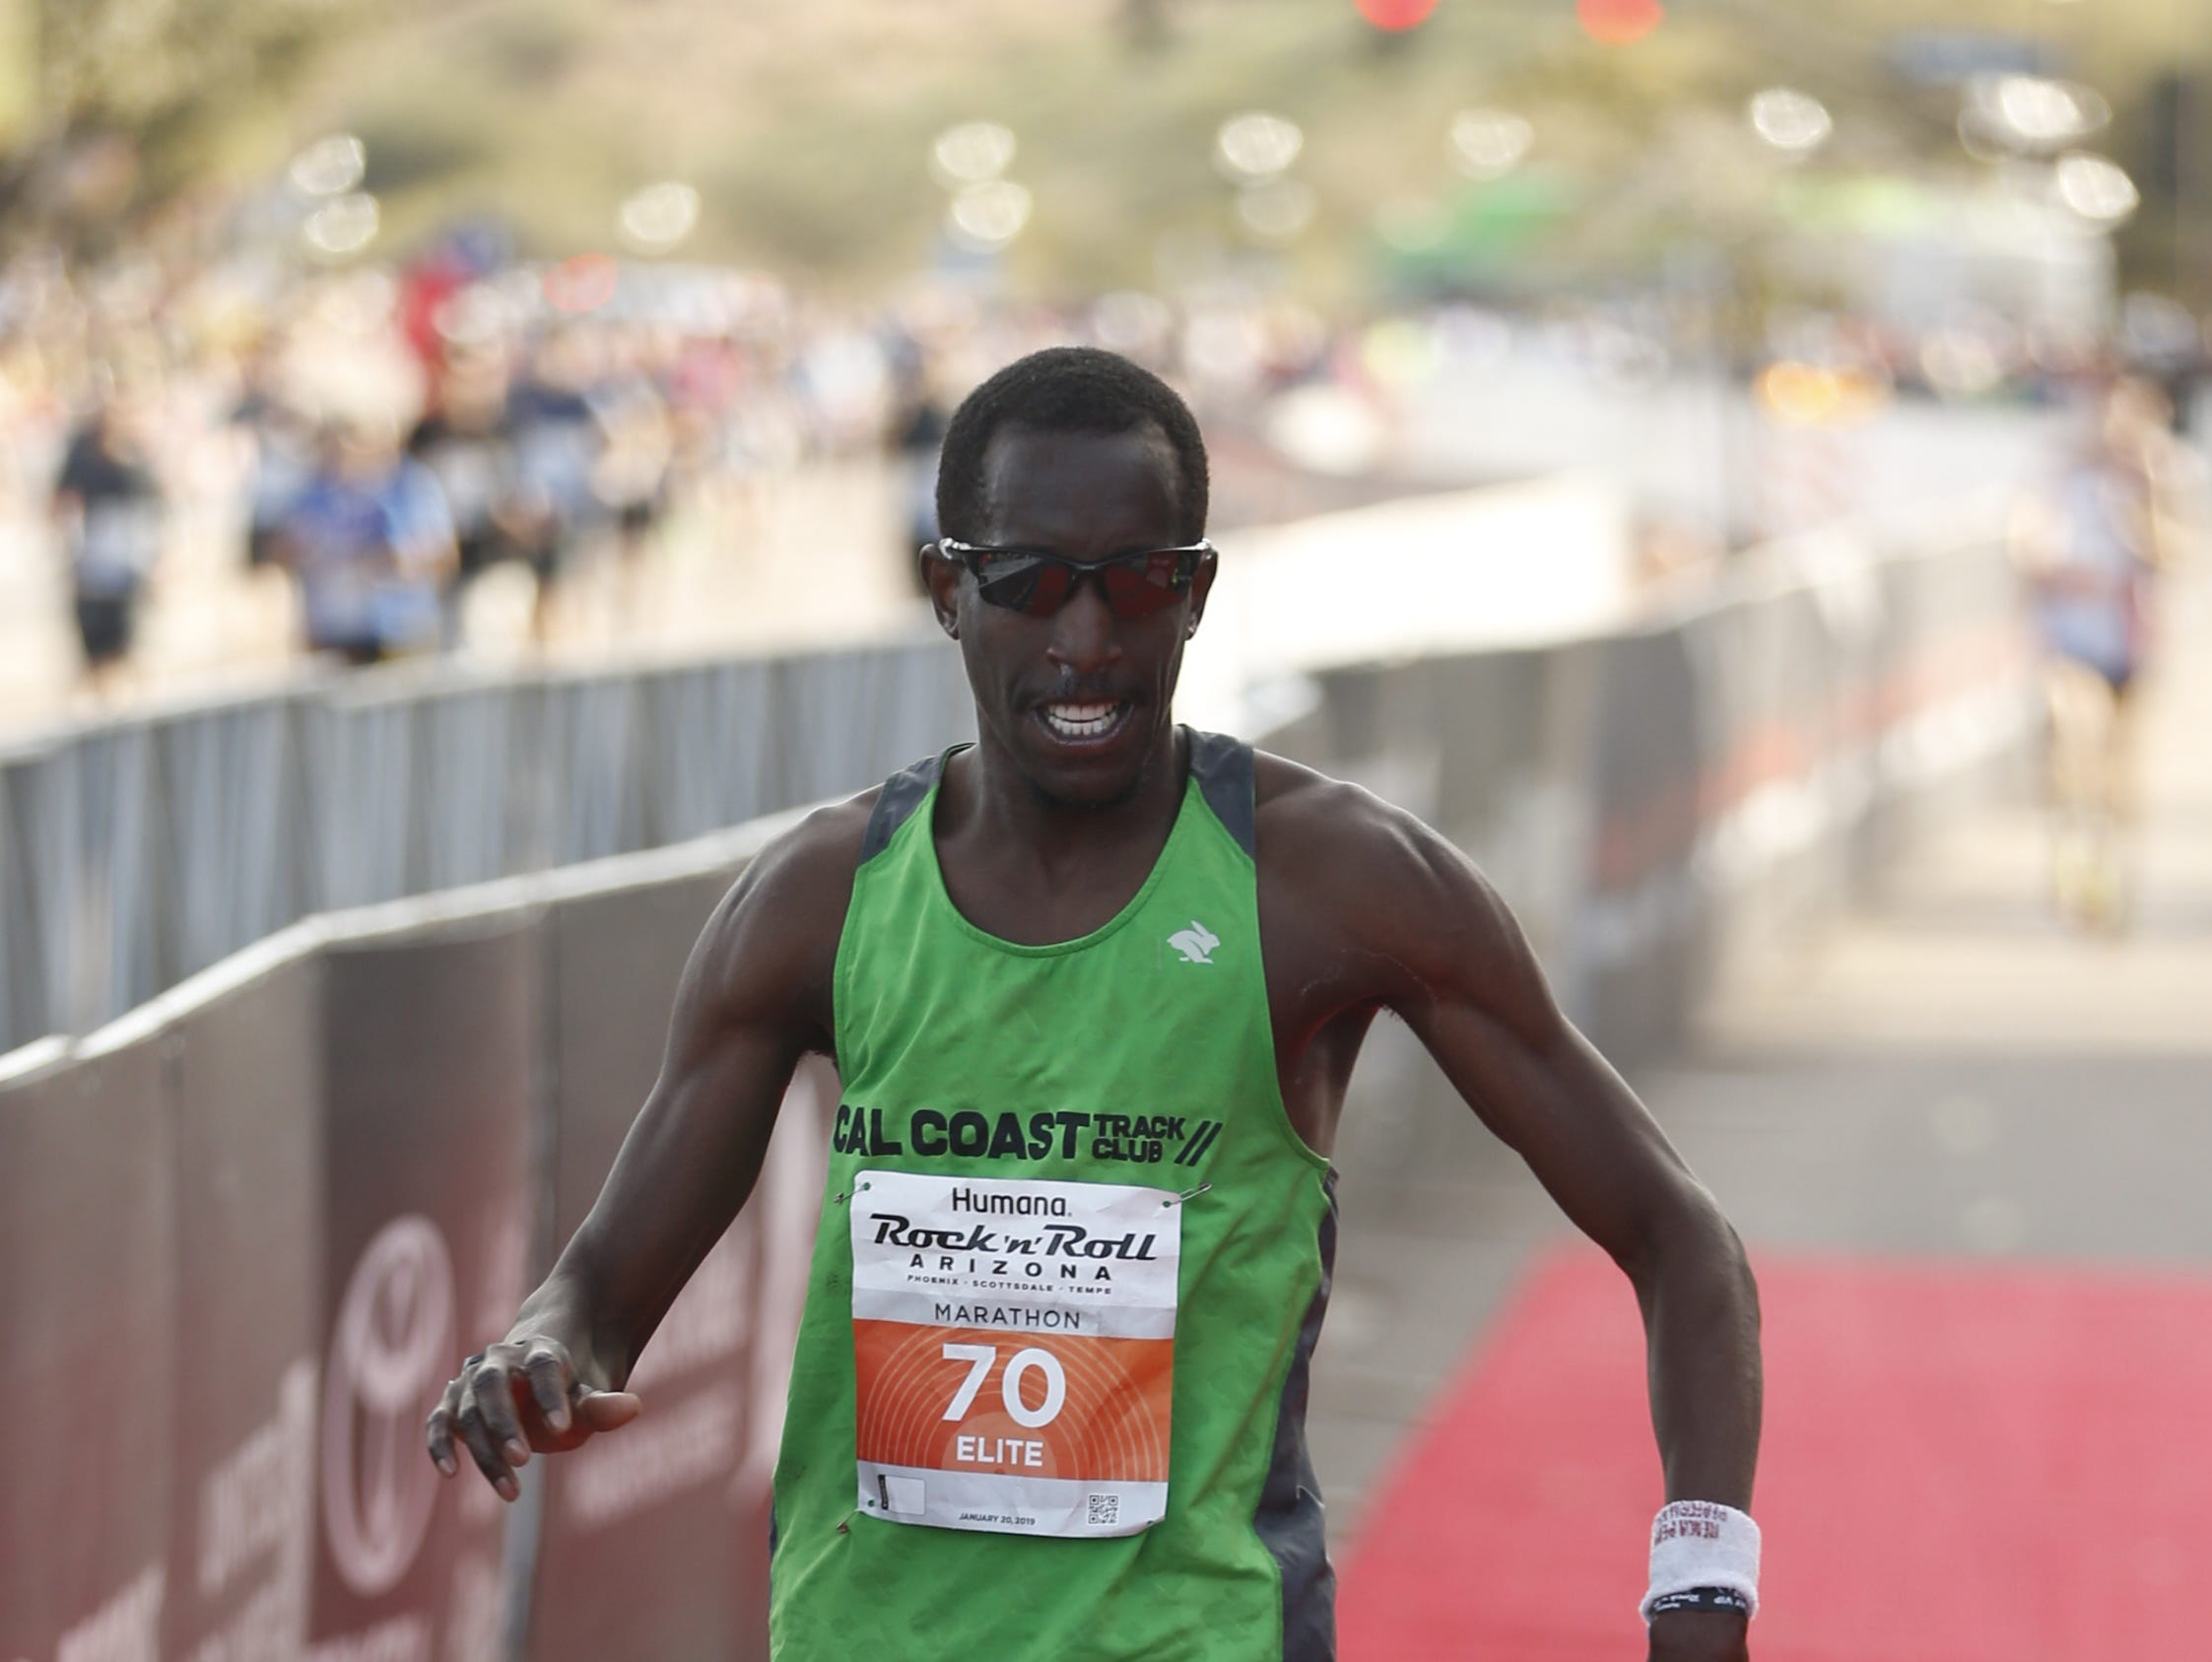 Roosevelt Cook finishes in second place during the Rock 'N' Roll half-marathon in Tempe on Jan. 20, 2019.